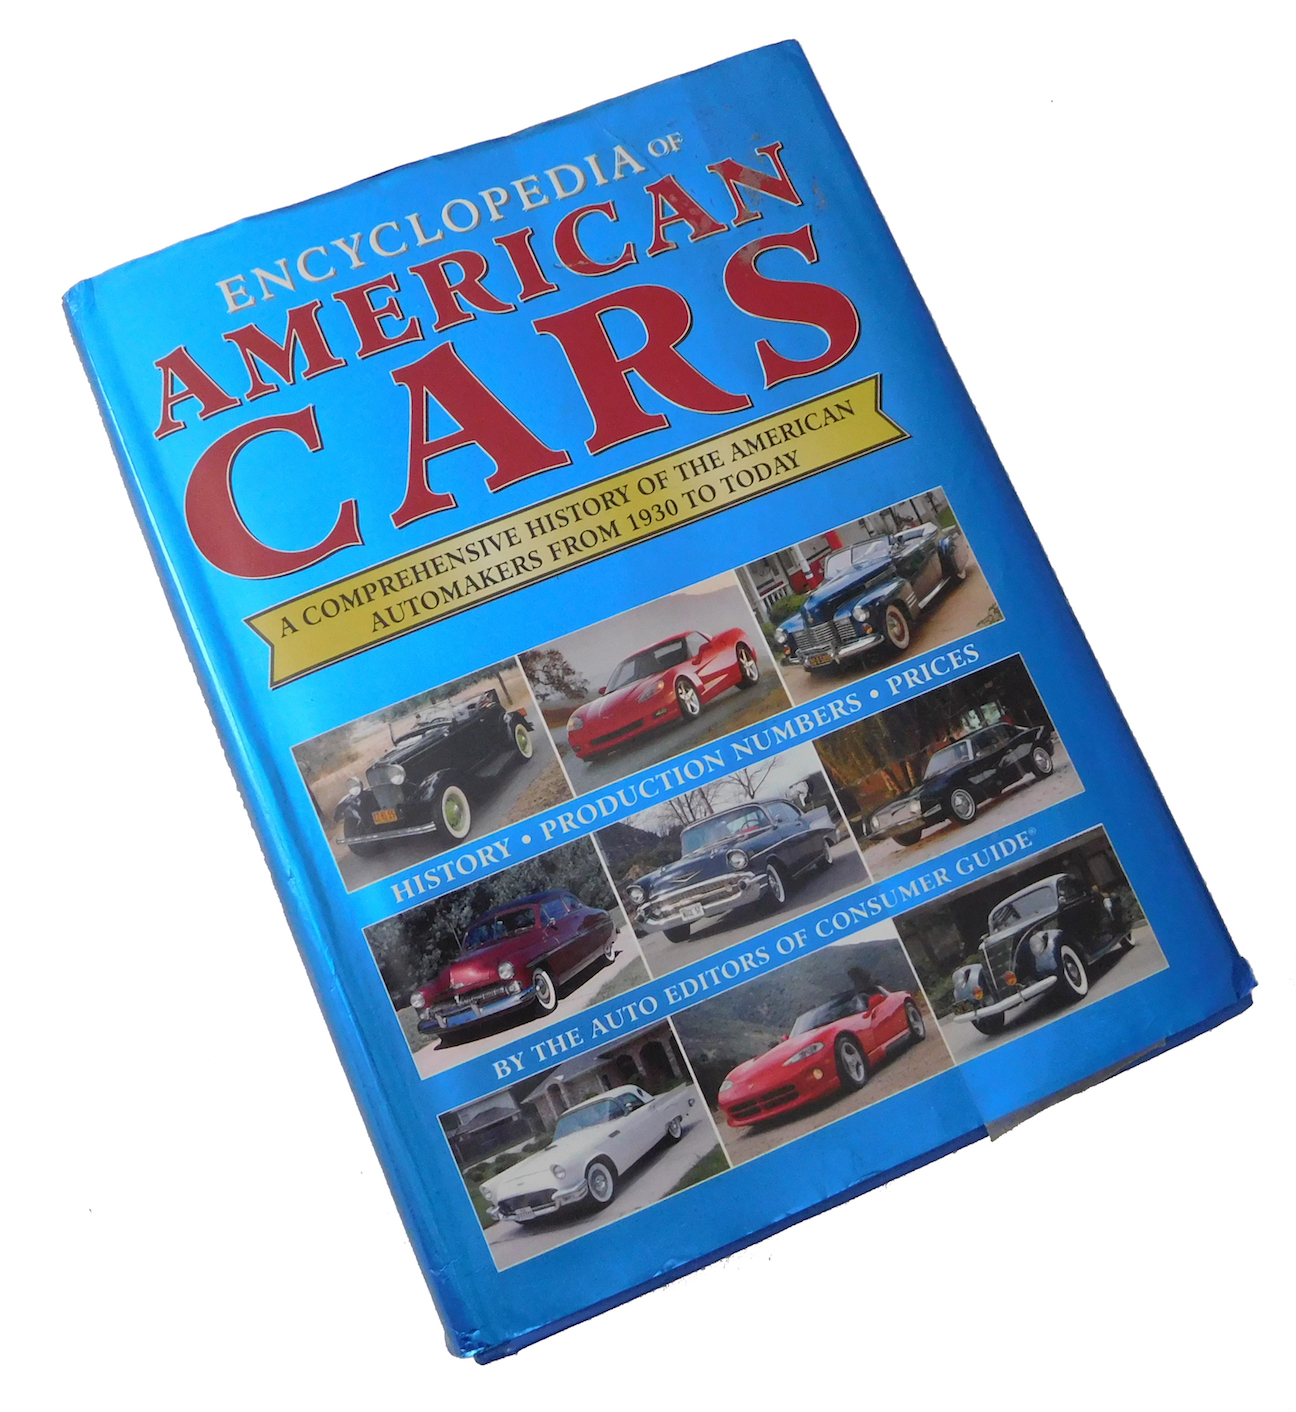 LOOK IT UP! Automotive reference books on my shelf…